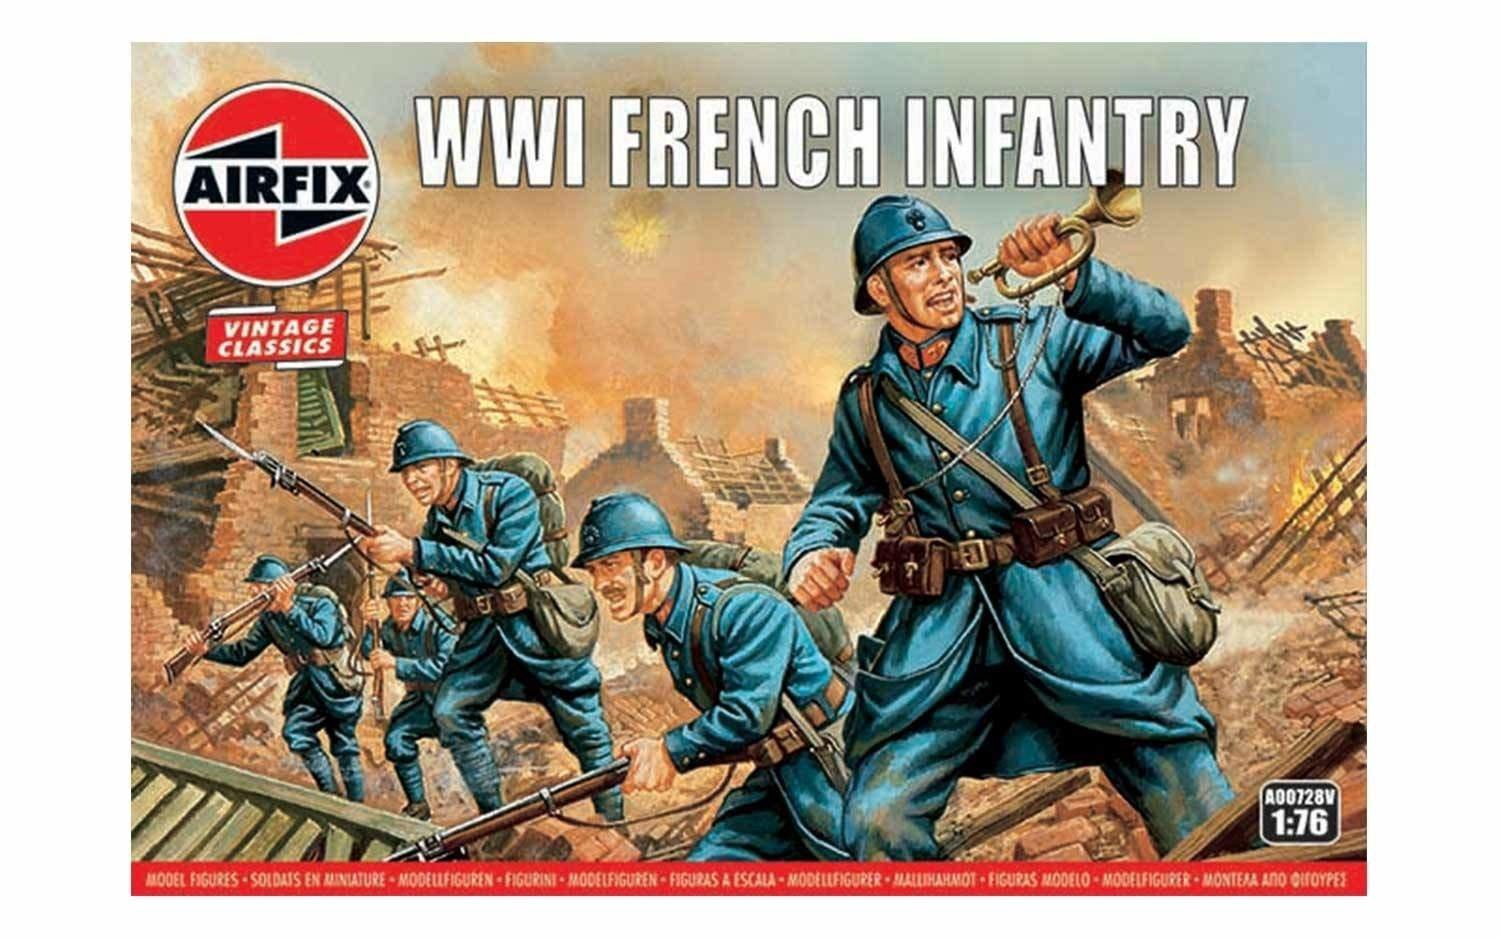 Airfix #A00728V 1/76 WWI French Infantry-Vintage Classics